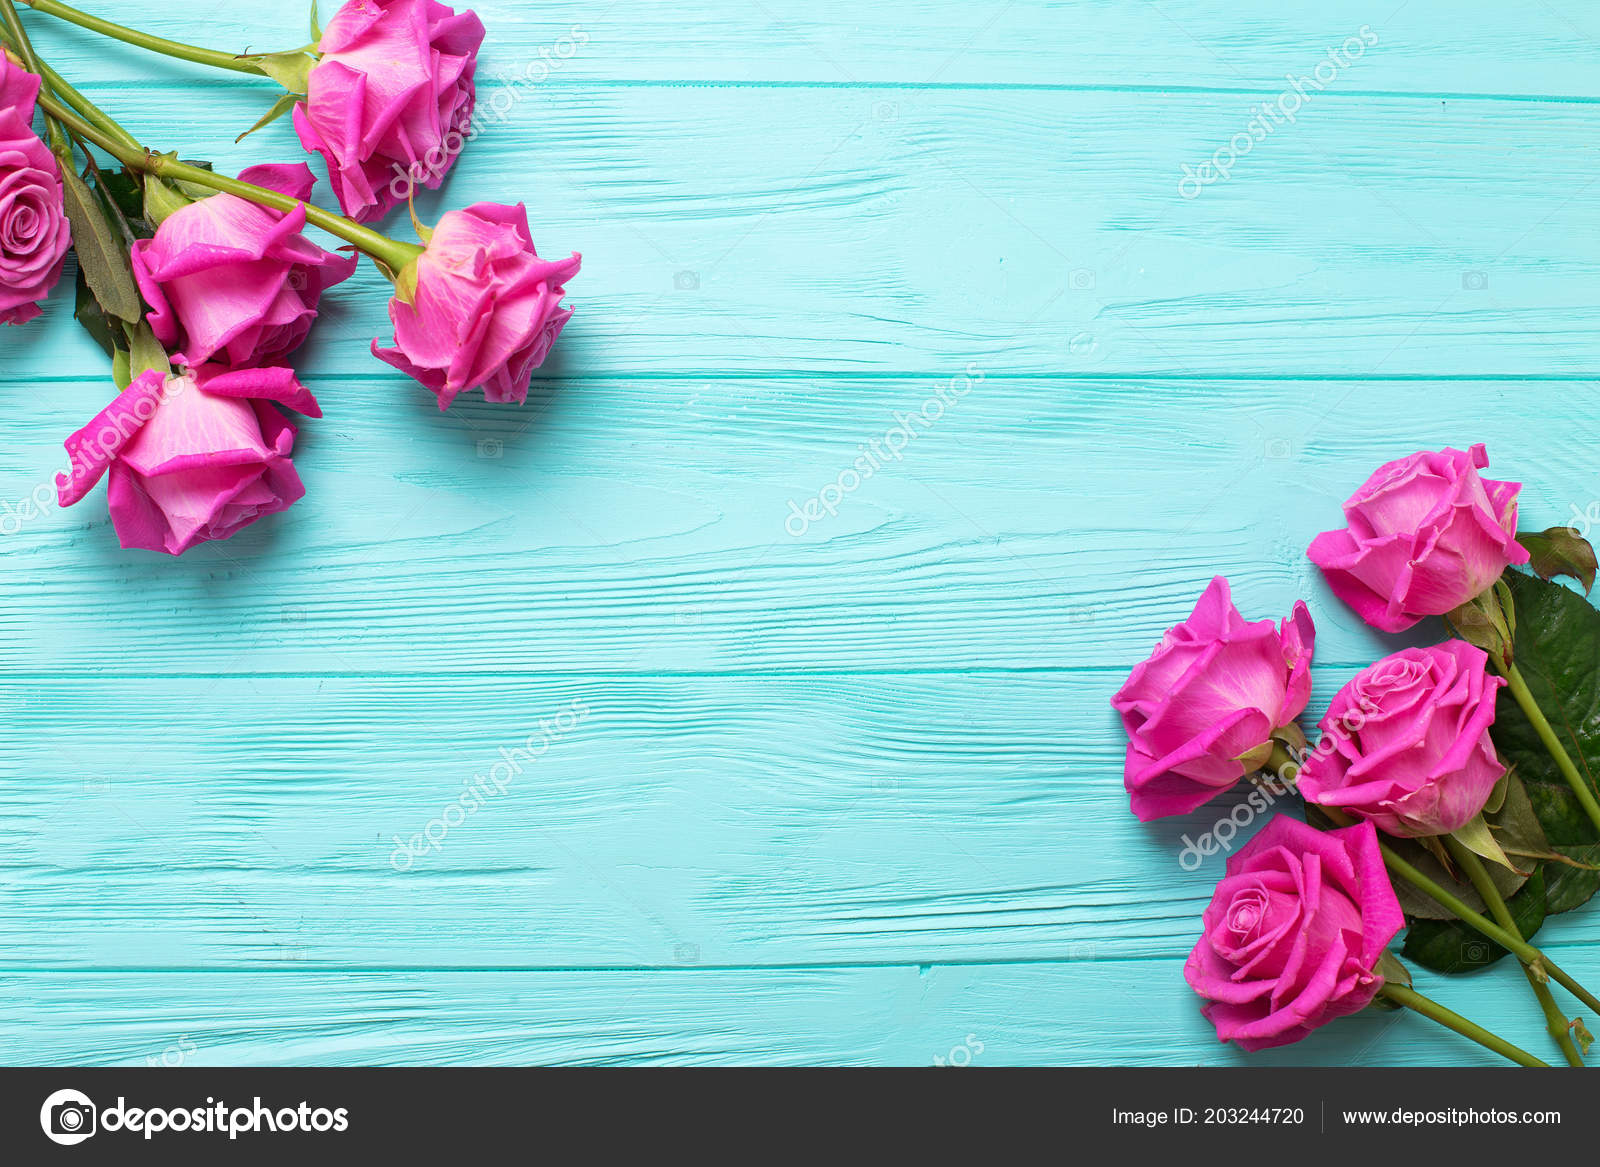 Border Pink Roses Flowers Teal Color Wooden Background Stock Photo